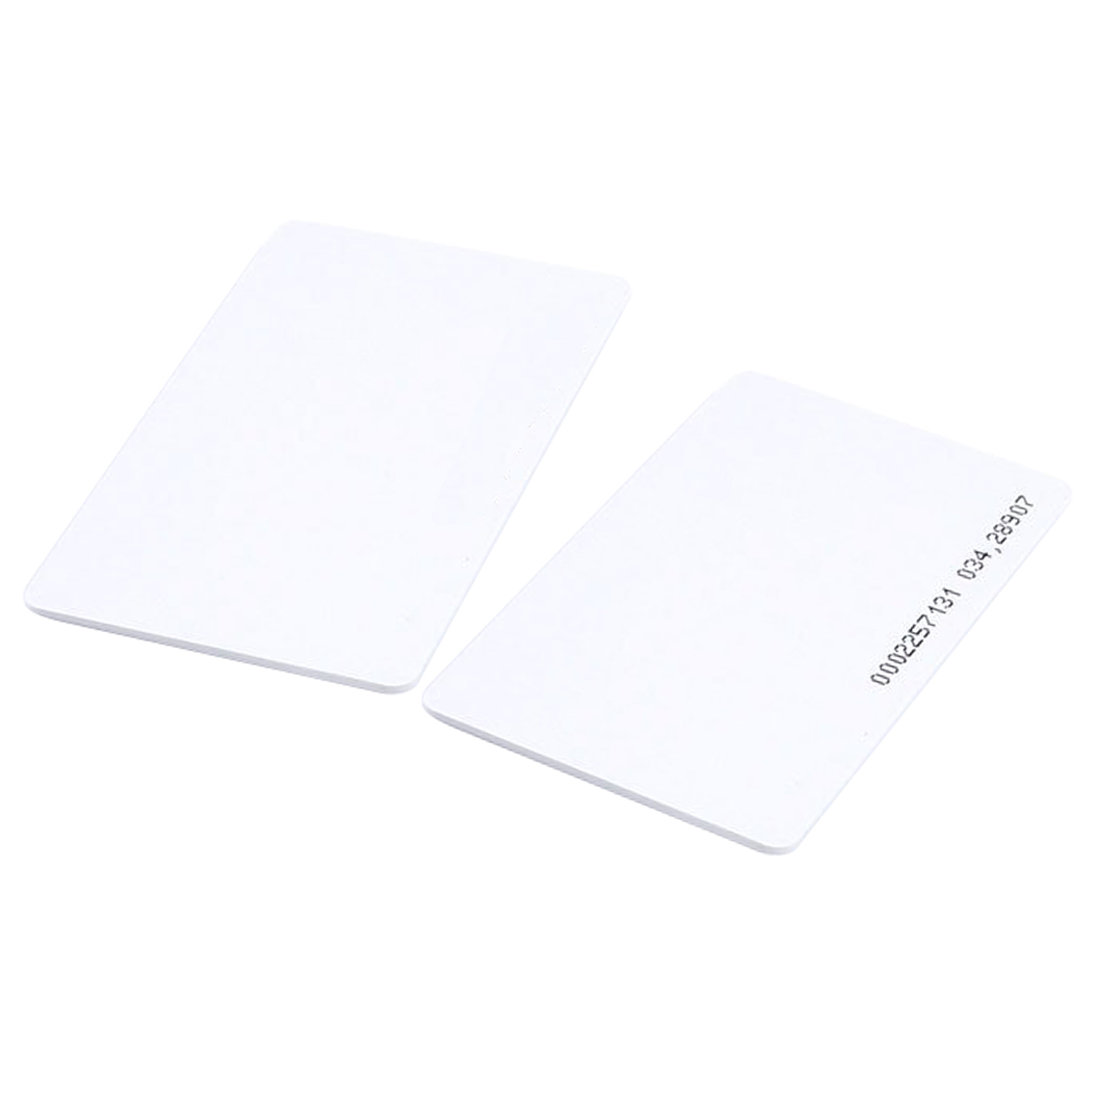 5 Packs 50 pieces Intelligent Proximity EM4100 125kHz RFID Proximity Card Entry Empty ID Access